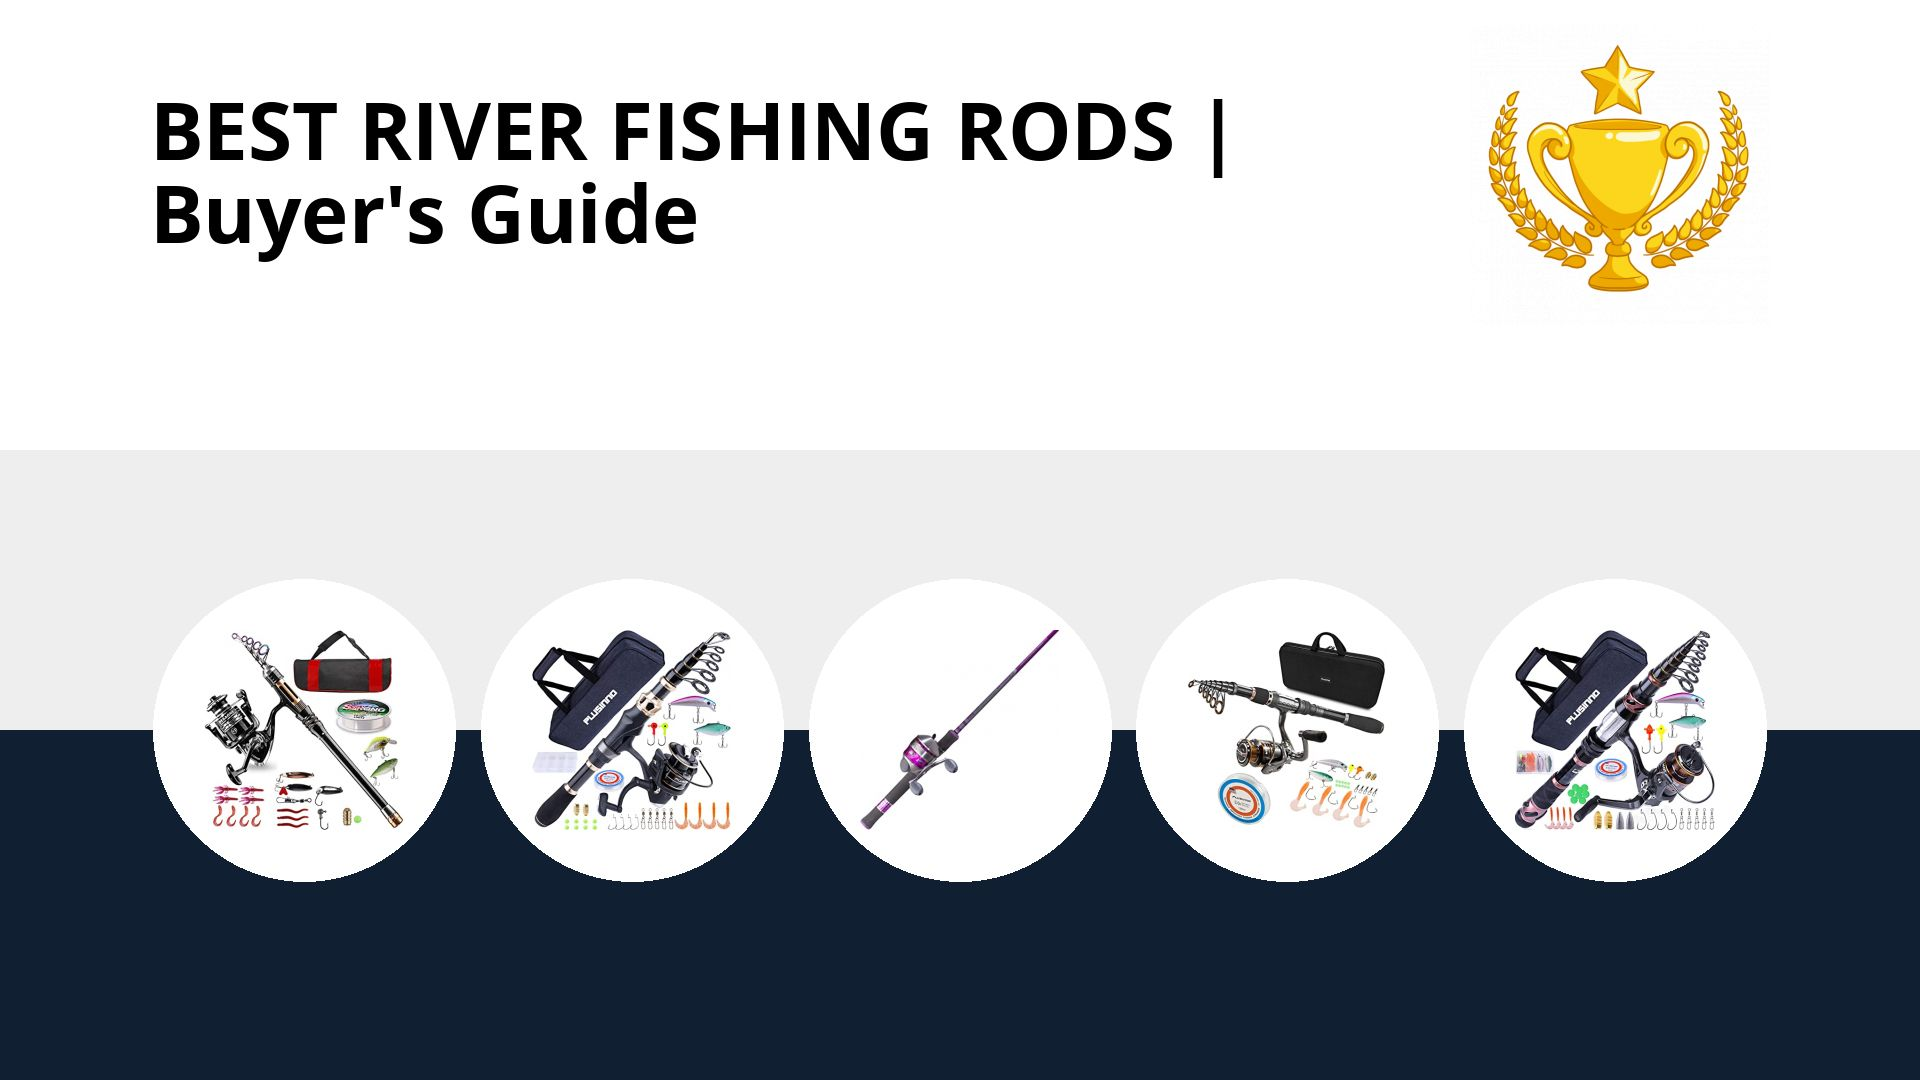 Best River Fishing Rods: image